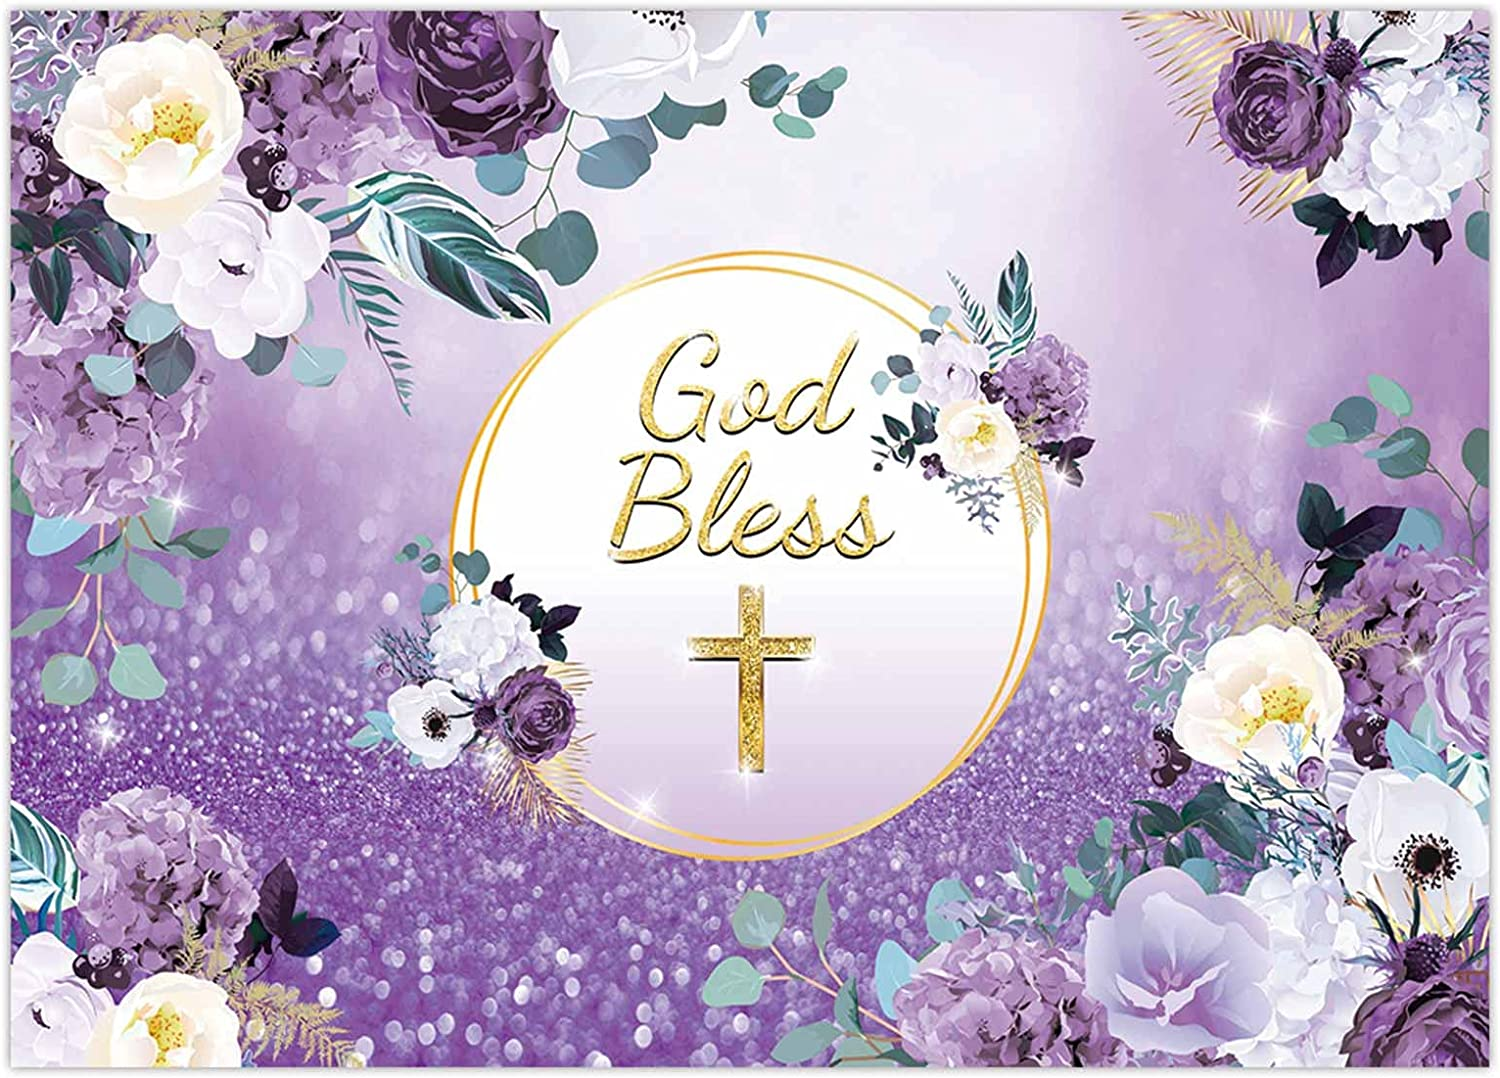 Funnytree 7x5FT God Bless Backdrop Baptism Party Girl First Holy Communion Christening Banner Decor Purple Floral Birthday Baby Shower Background Favors Gifts Supplies Photo Booth Props